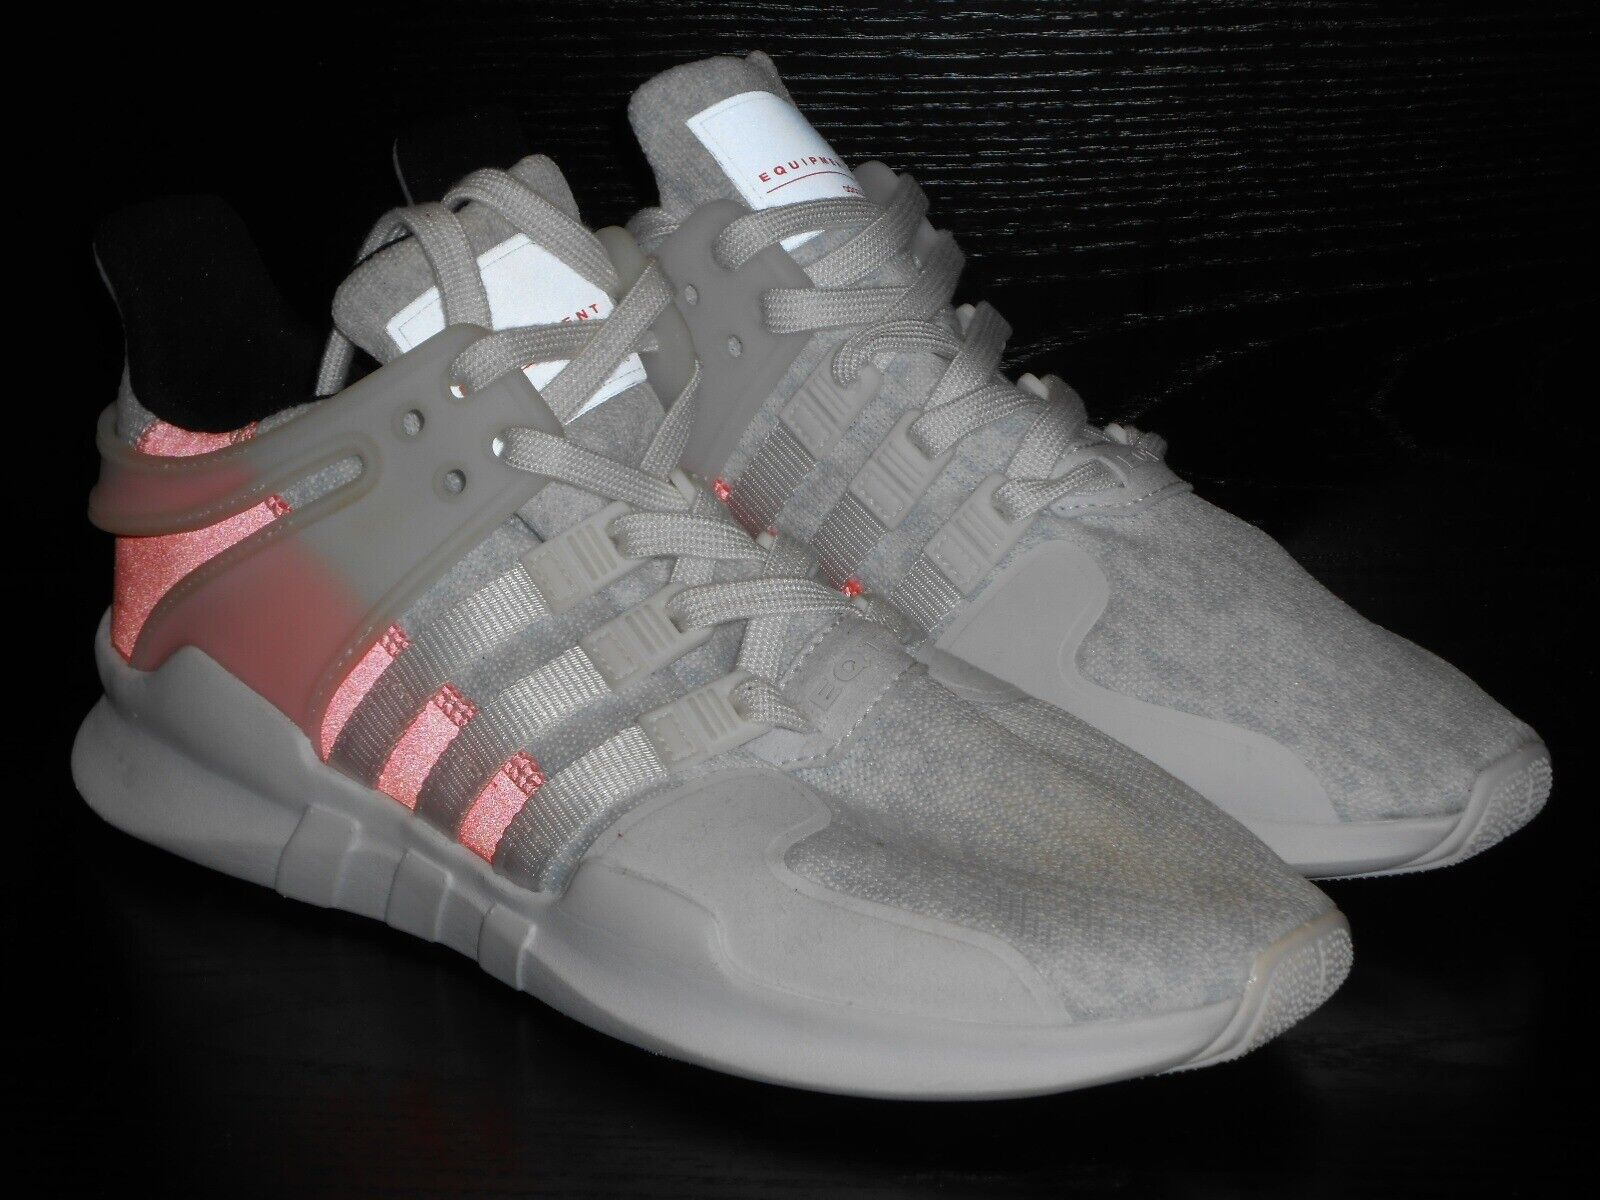 Adidas EQT Support ADV Mens Trainer shoes UK Size 8 White